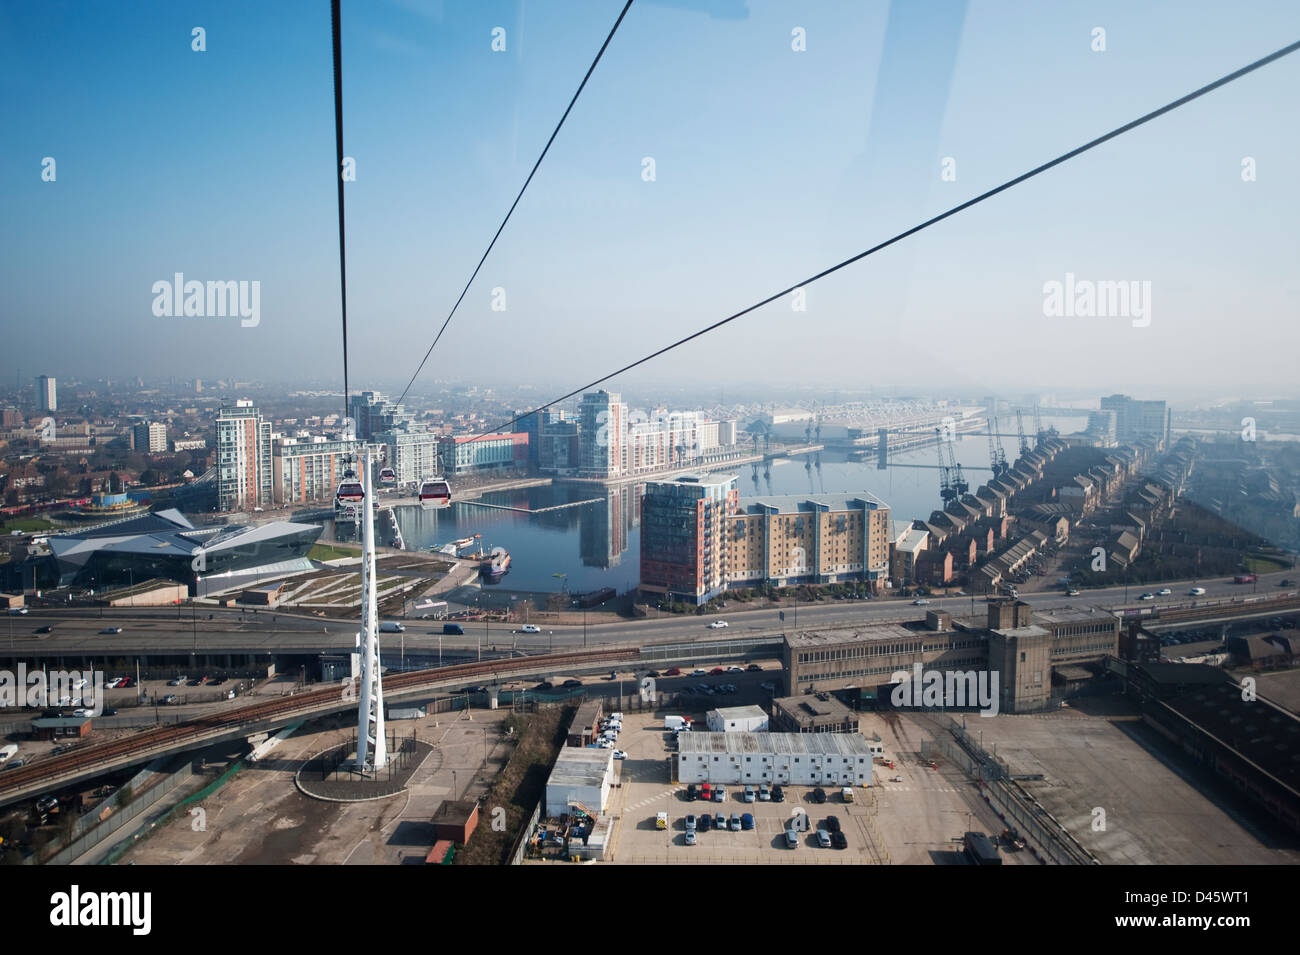 Aerial view north from the Emirates Air Line cablecar above the dlr tracks with Royal Victoria Docks in the distance, - Stock Image